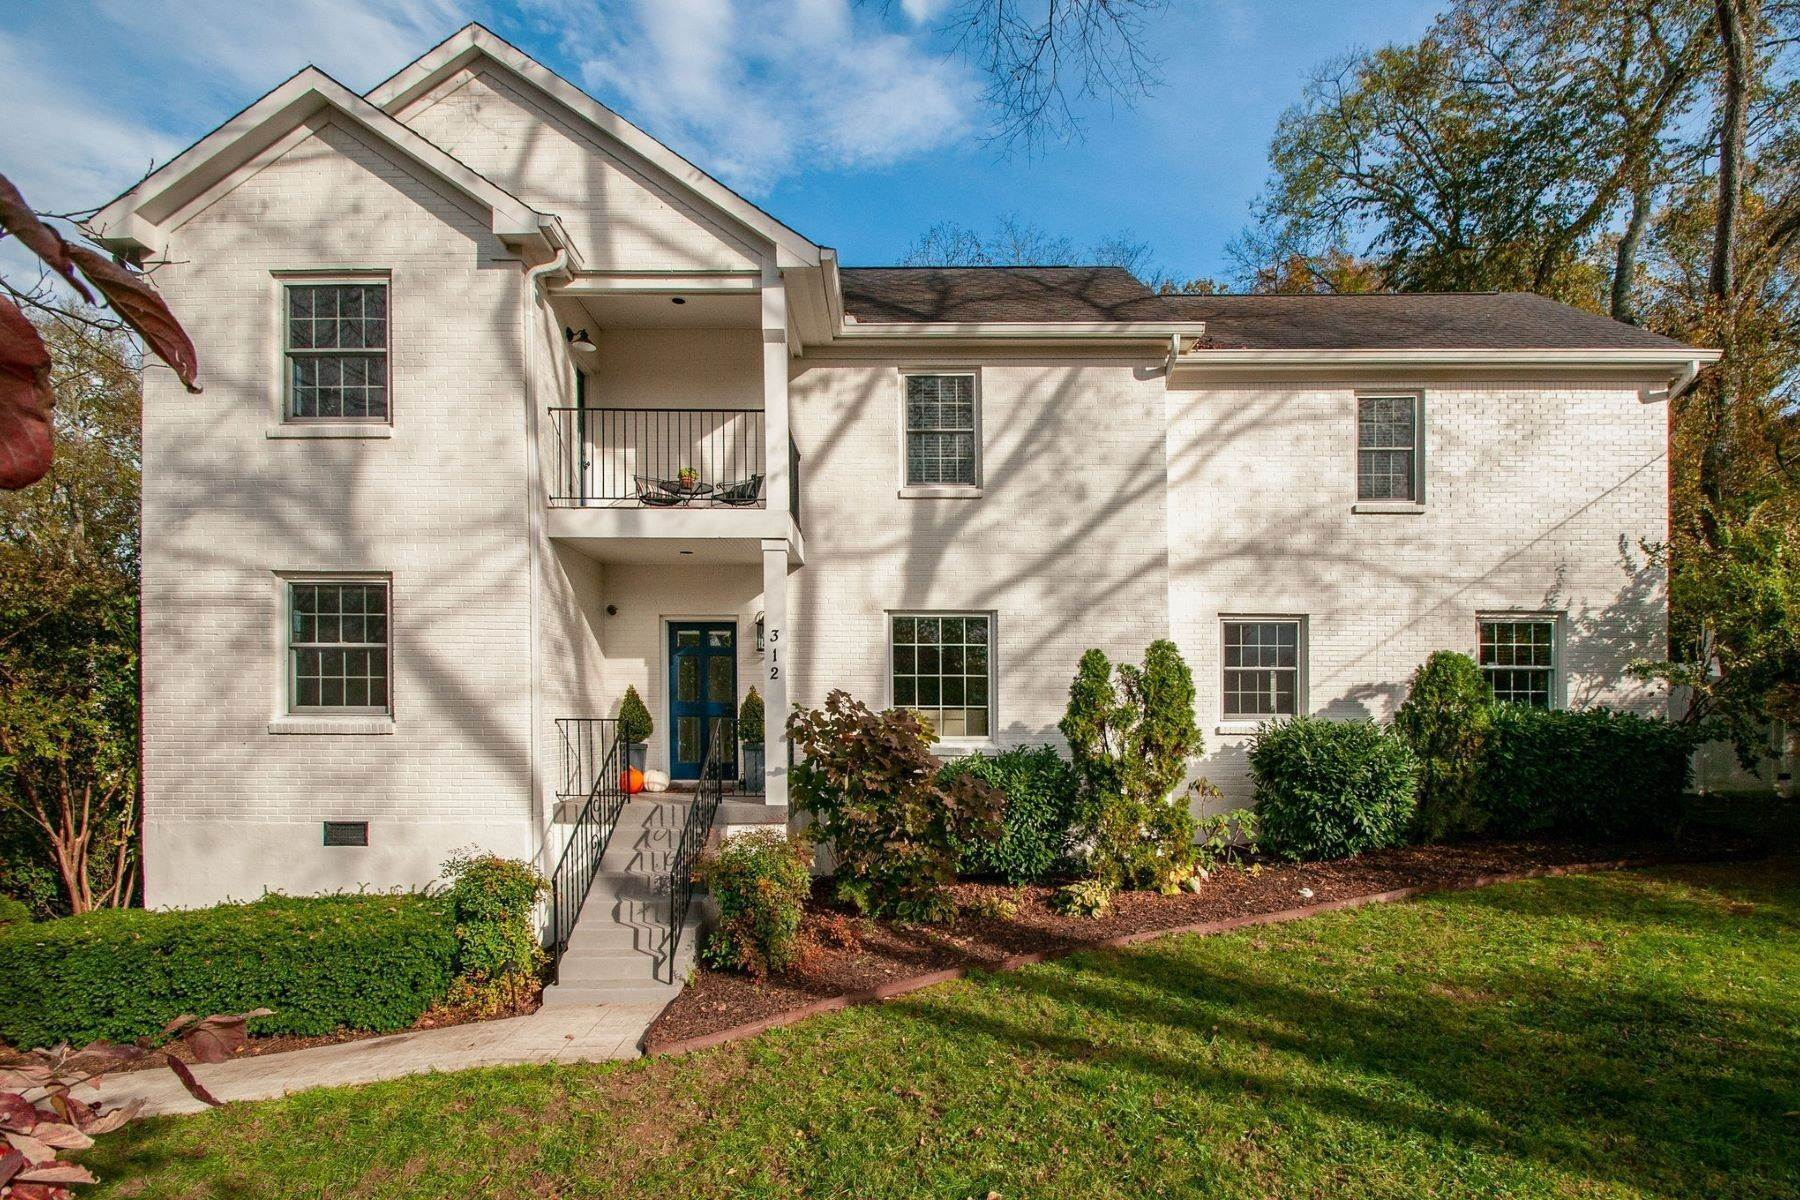 Single Family Homes for Sale at 312 S Wilson Blvd, Nashville, Tn, 37205 312 S Wilson Blvd Nashville, Tennessee 37205 United States